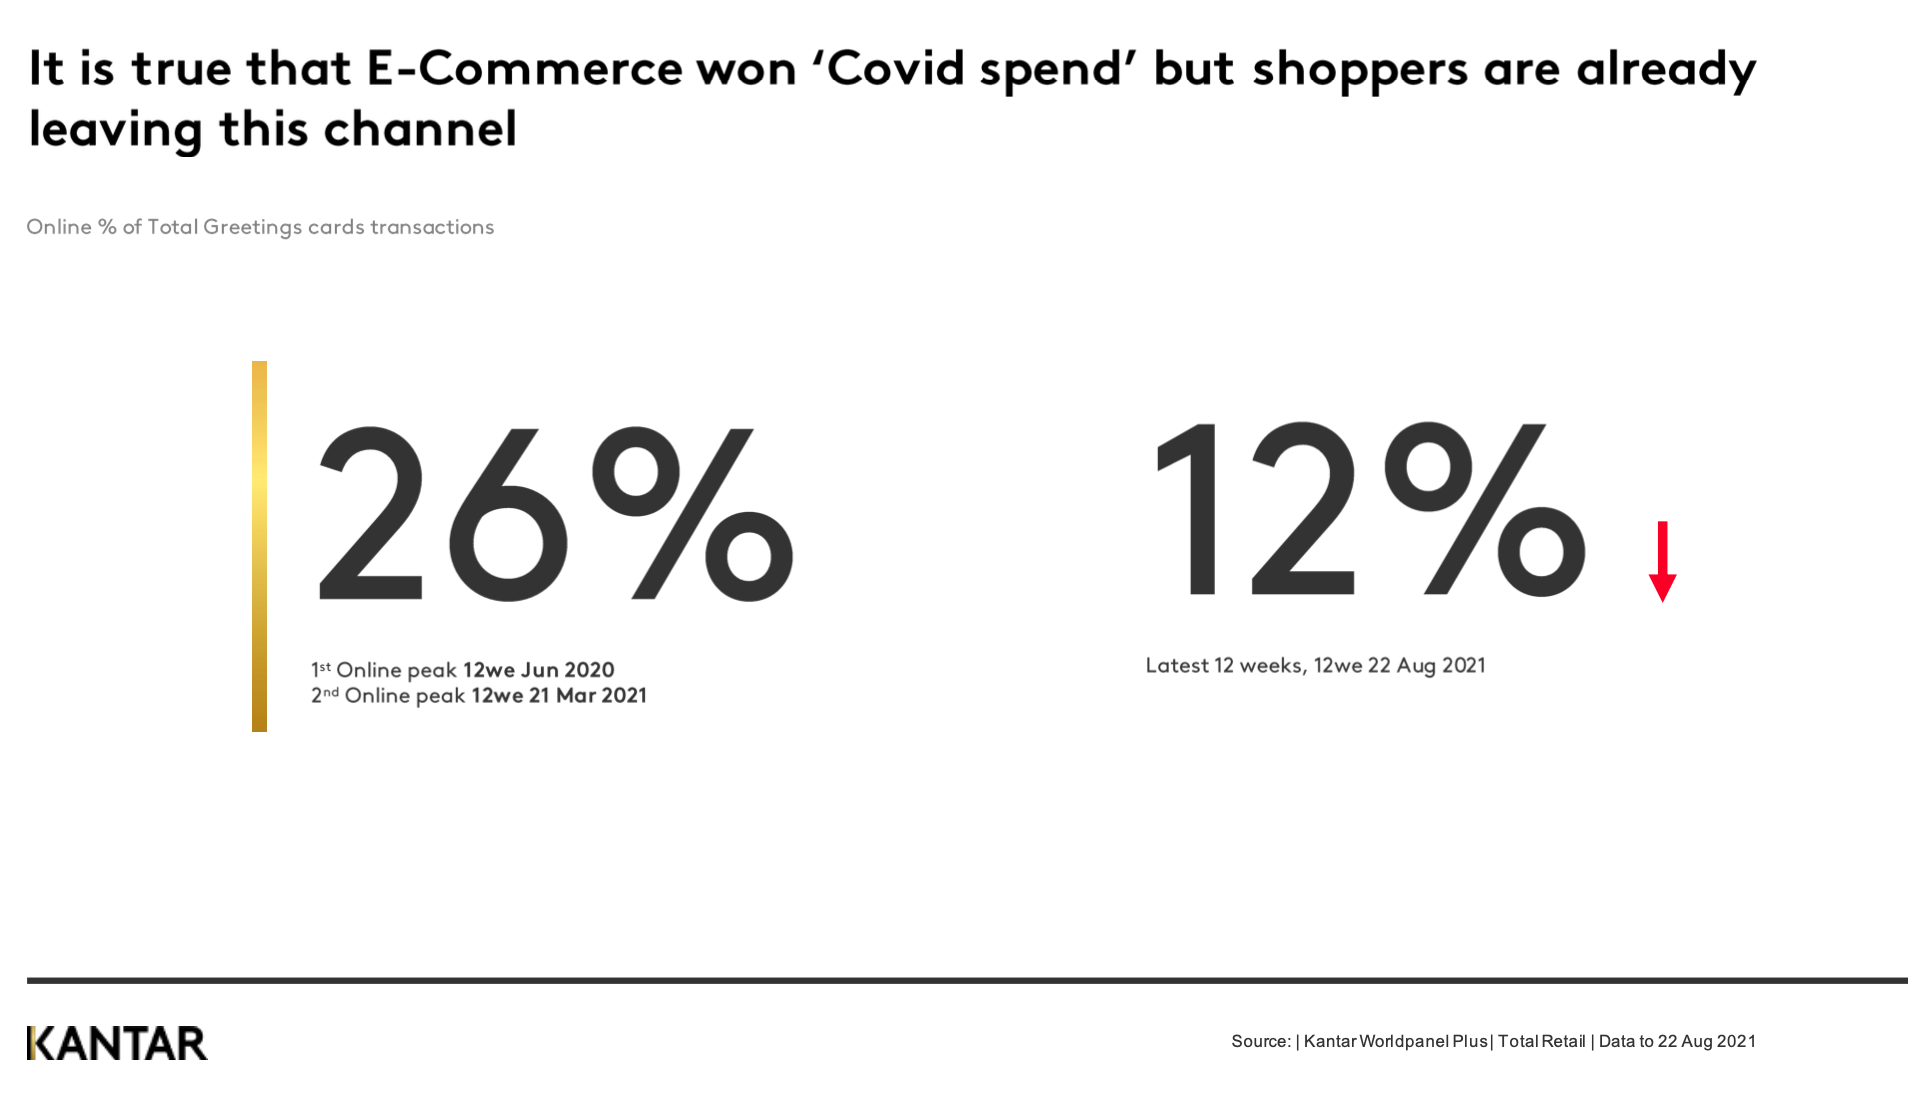 Above: No one knows quite yet what the ecommerce market share for greeting cards will settle at, but Kantar is tracking it.